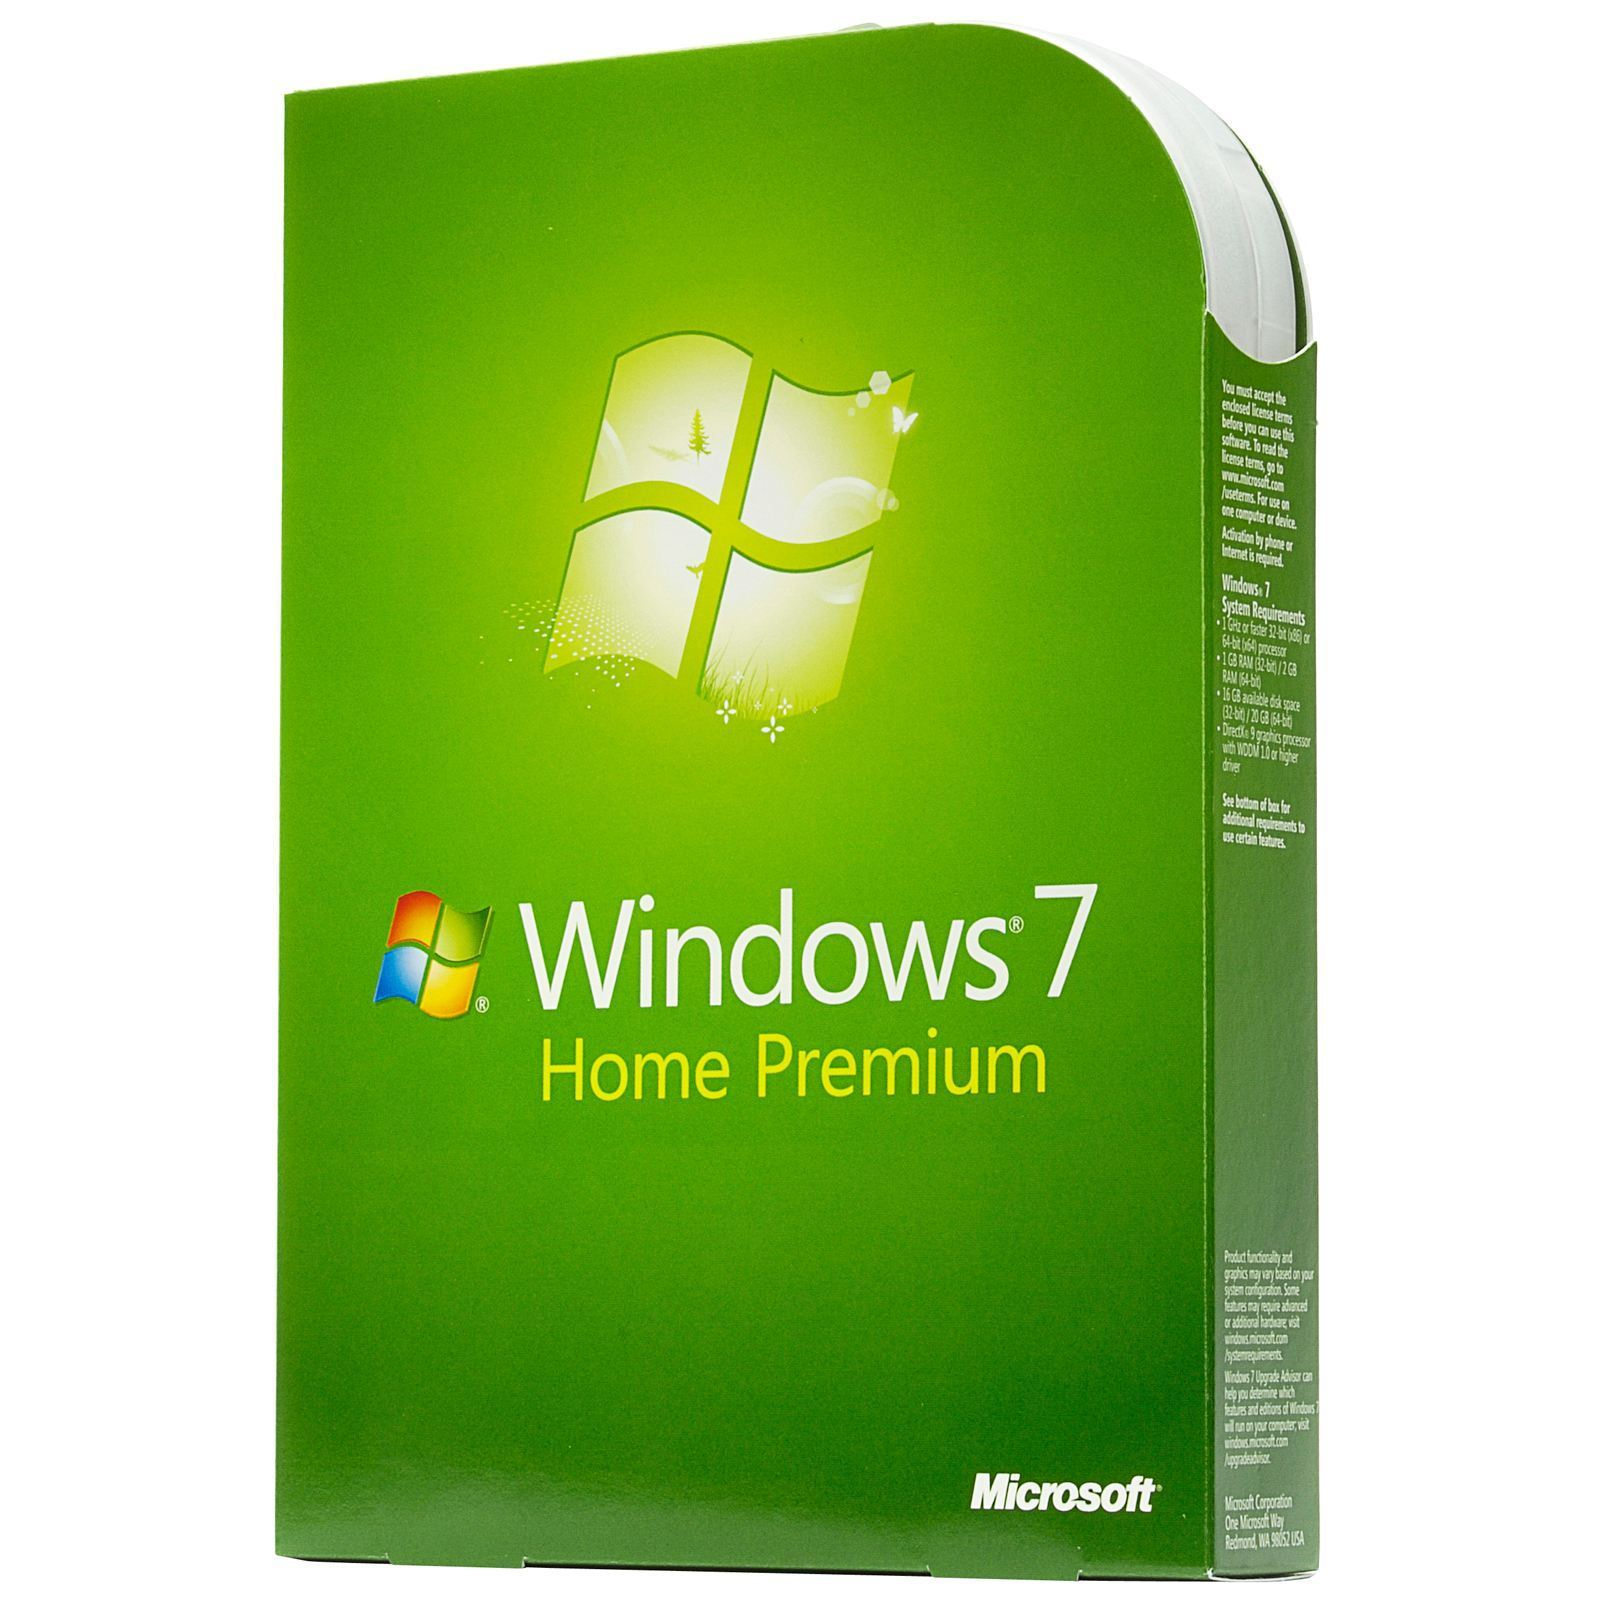 Windows 7 Home Premium 32/64bit Edition Genuine Activation Keys ONLY WINDOW